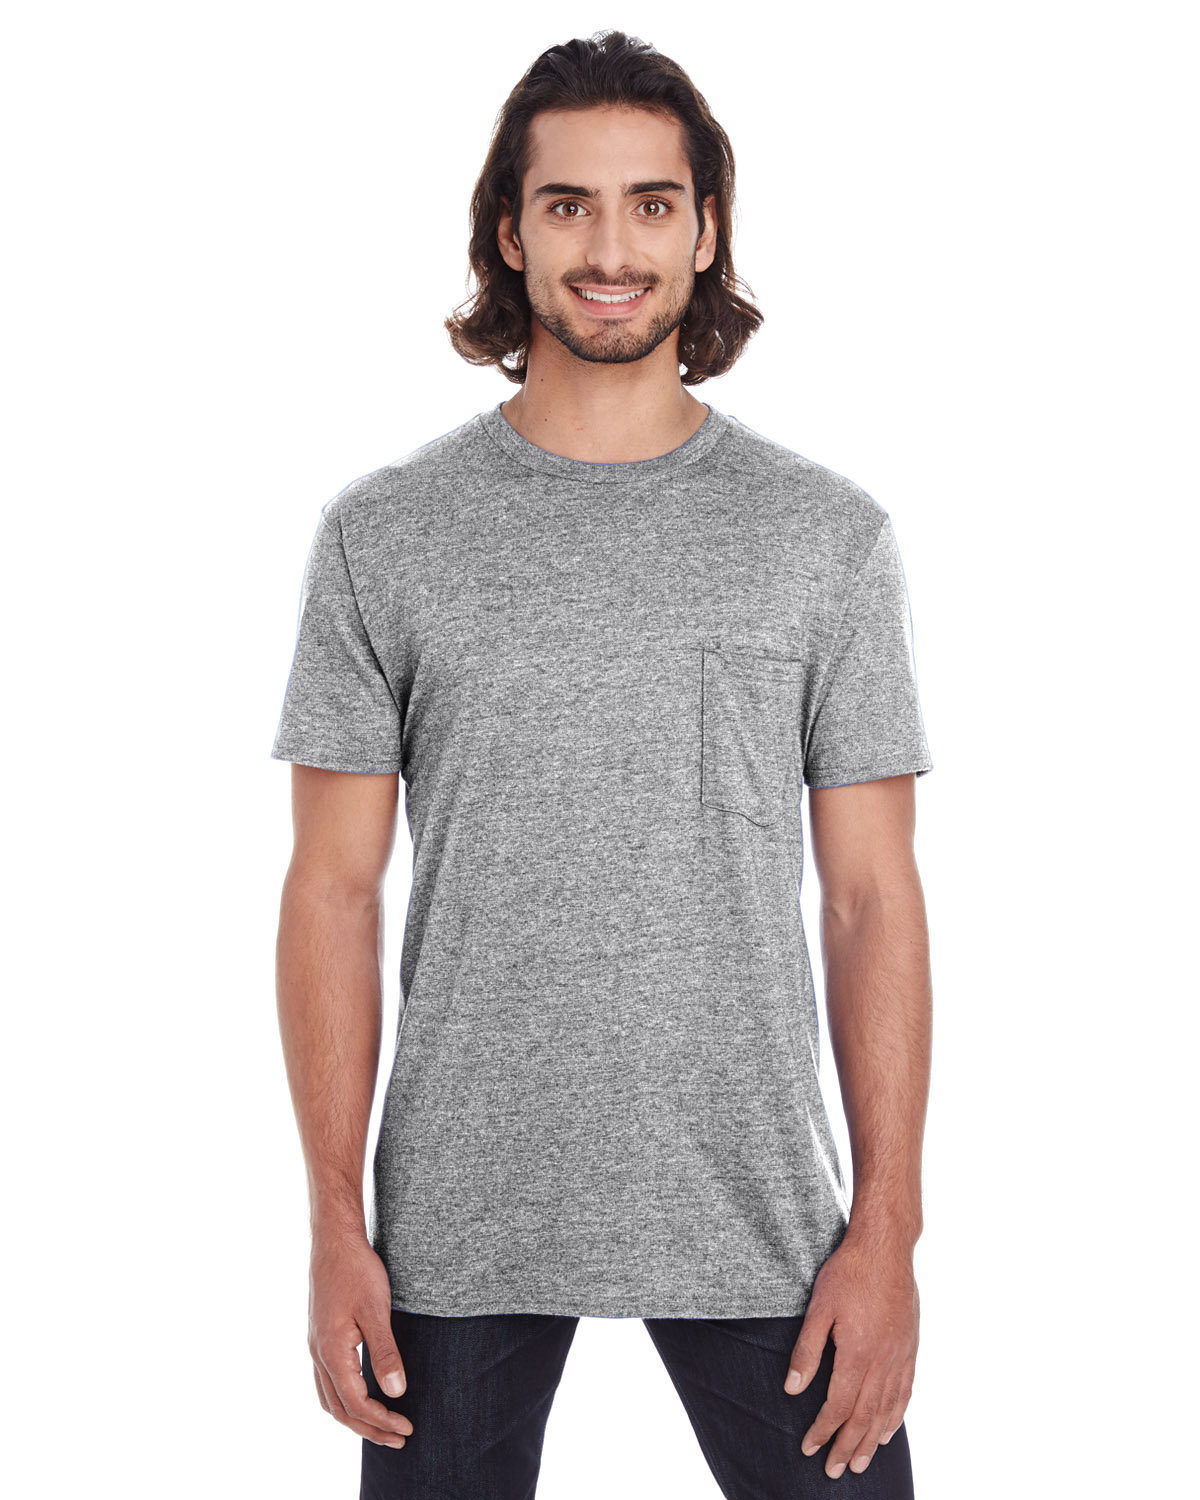 Anvil Adult Lightweight Pocket T-Shirt HEATHER GREY